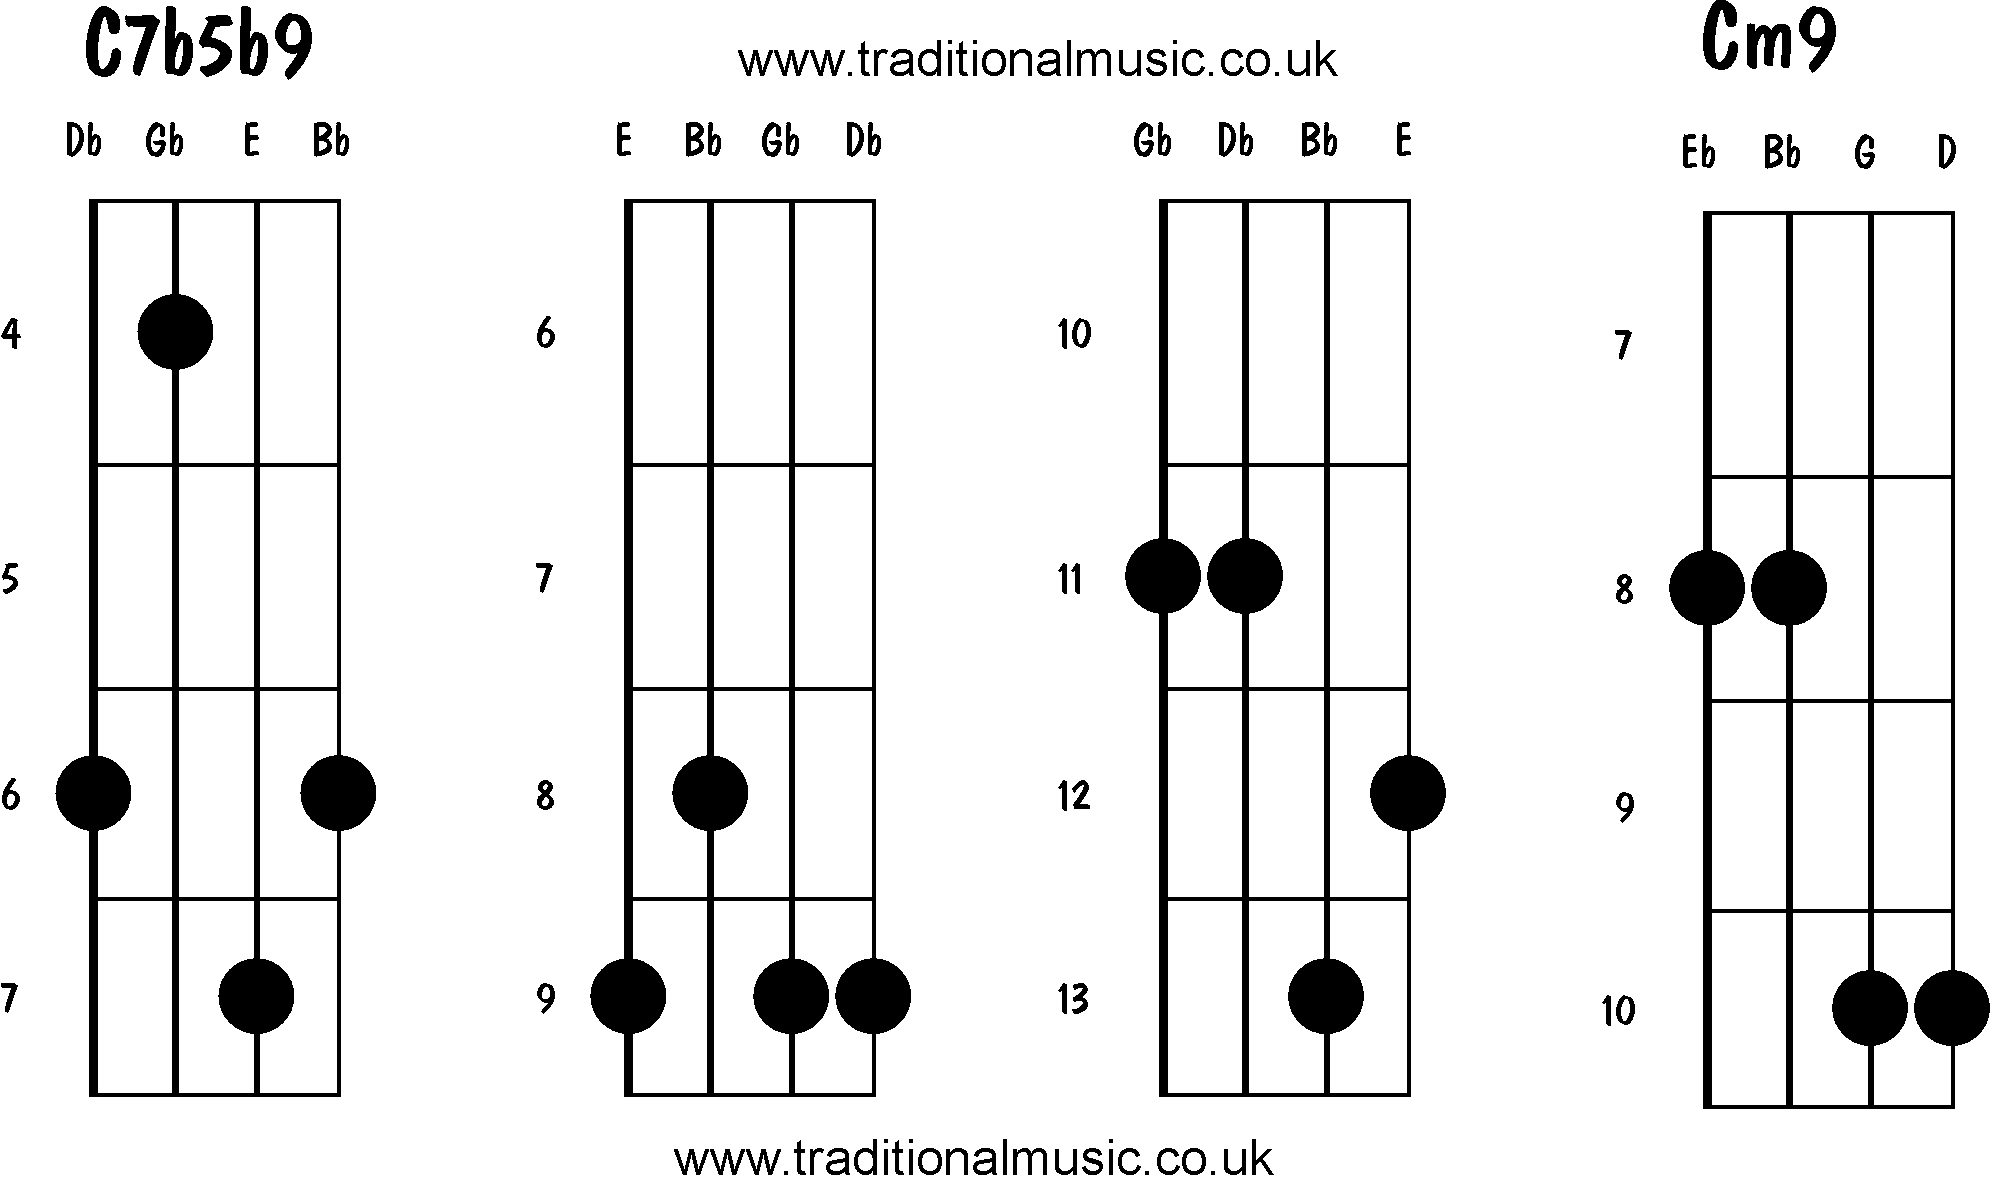 Chords diagrams and chartsprintable pdffor banjo guitar dobro advanced and movable mandolin chords hexwebz Choice Image